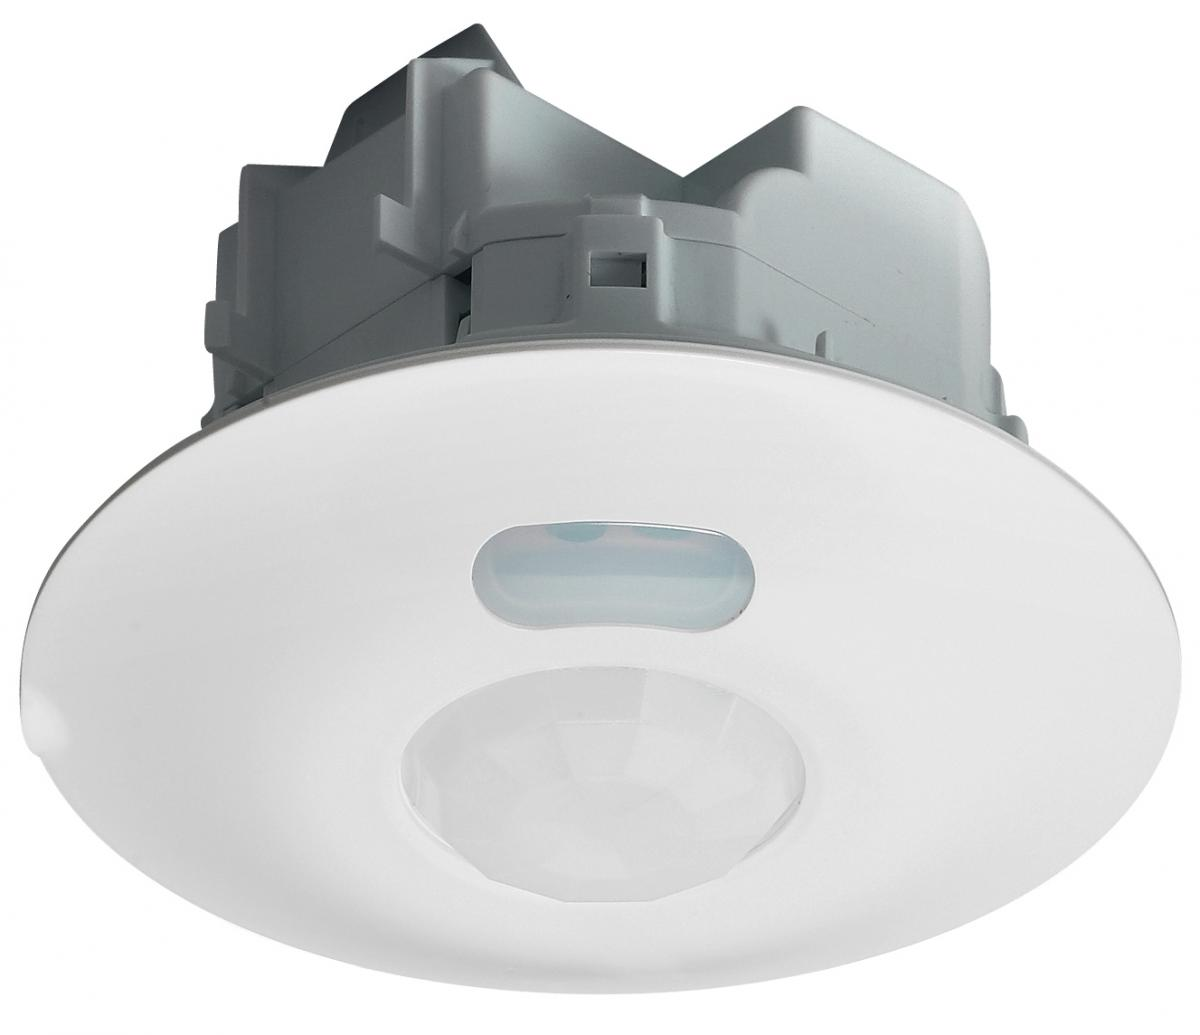 News Industrial And Commercial Lighting Legrands Energ Occupancy Sensors For Control Wiring Diagram Energy Efficient Management Solutions Environments